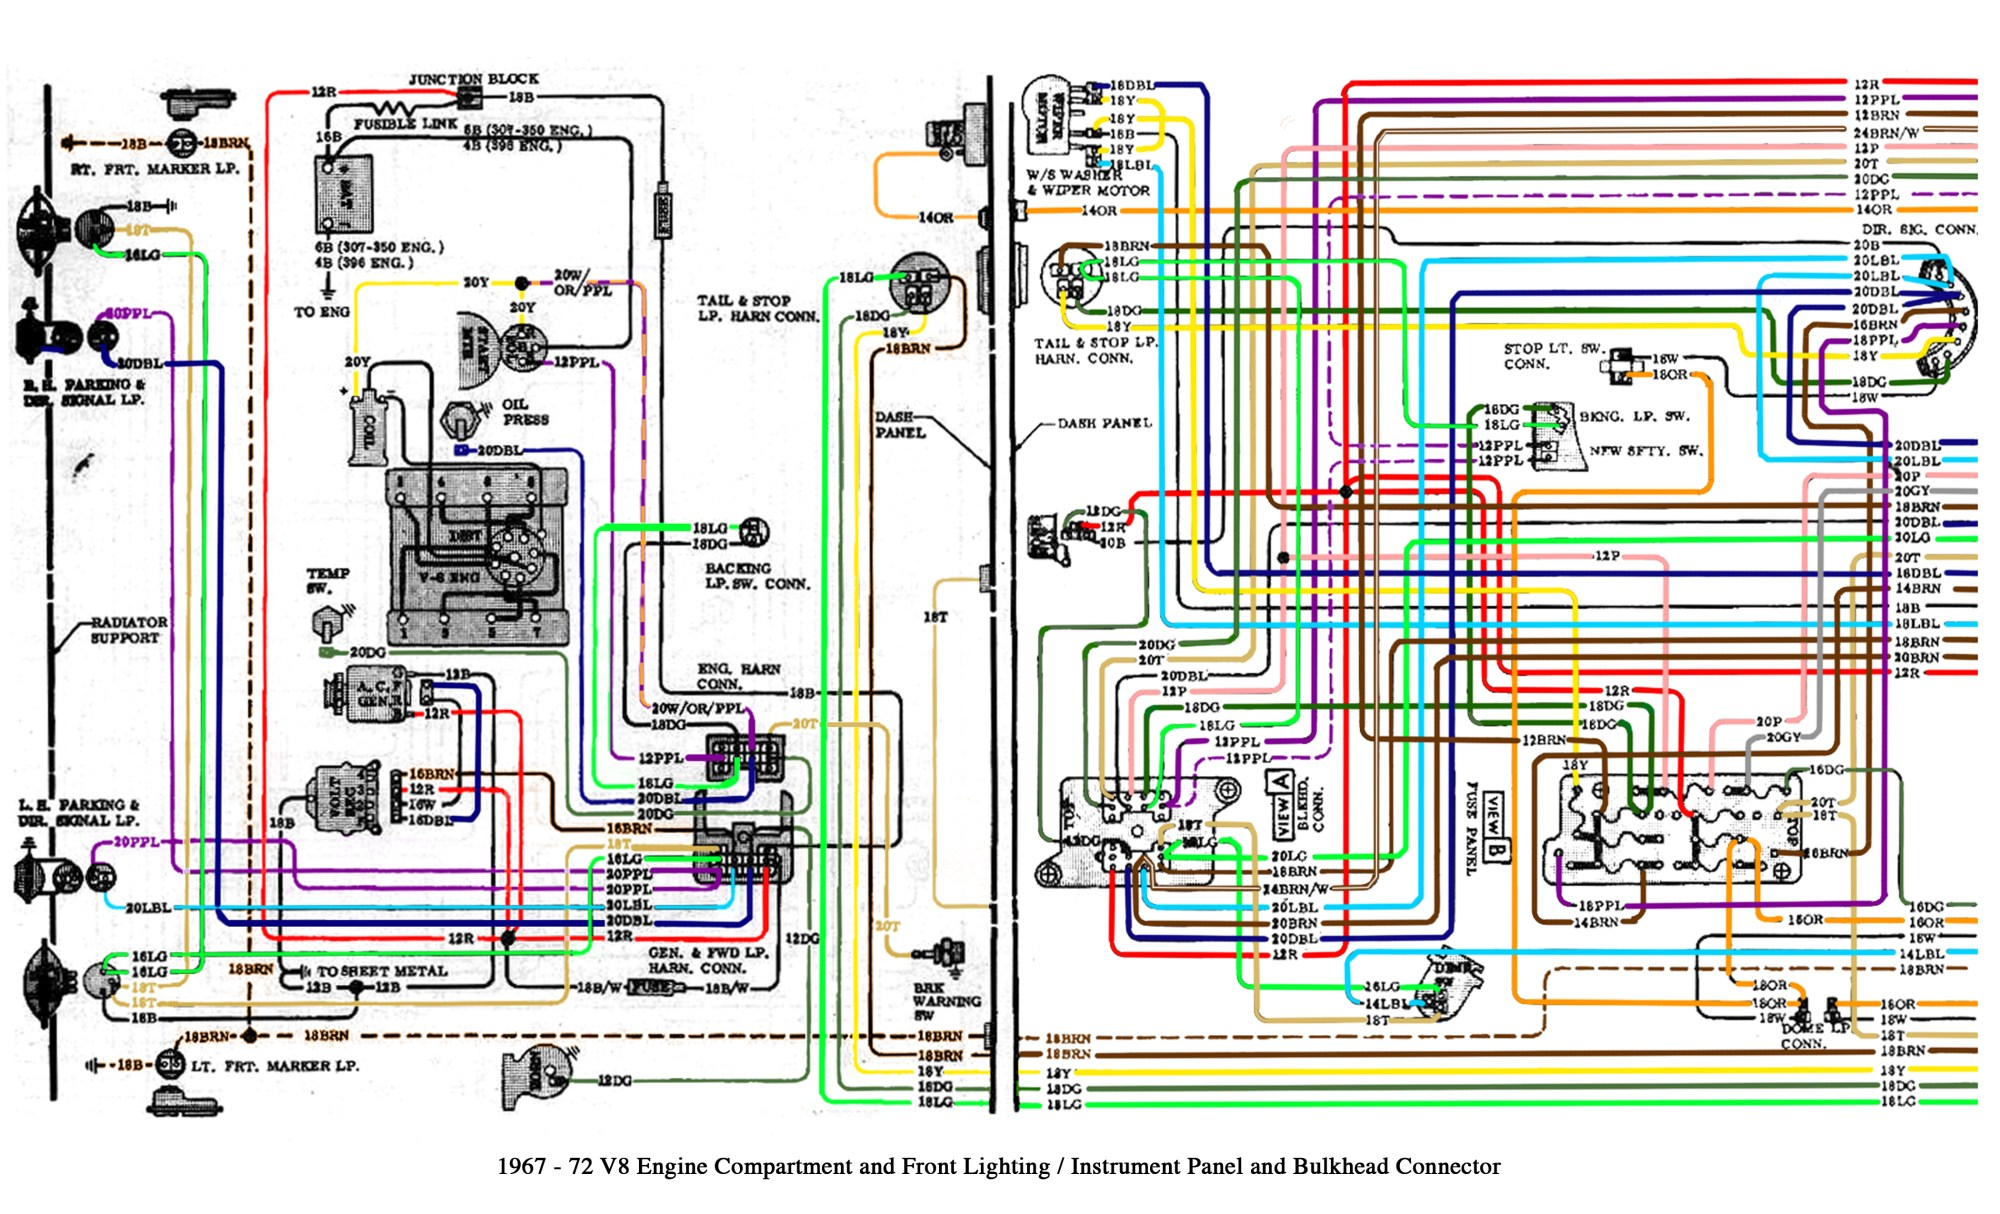 hight resolution of 1988 s10 wiring diagram wiring diagram forward 88 s10 fuel pump wiring diagram 1988 s10 wiring